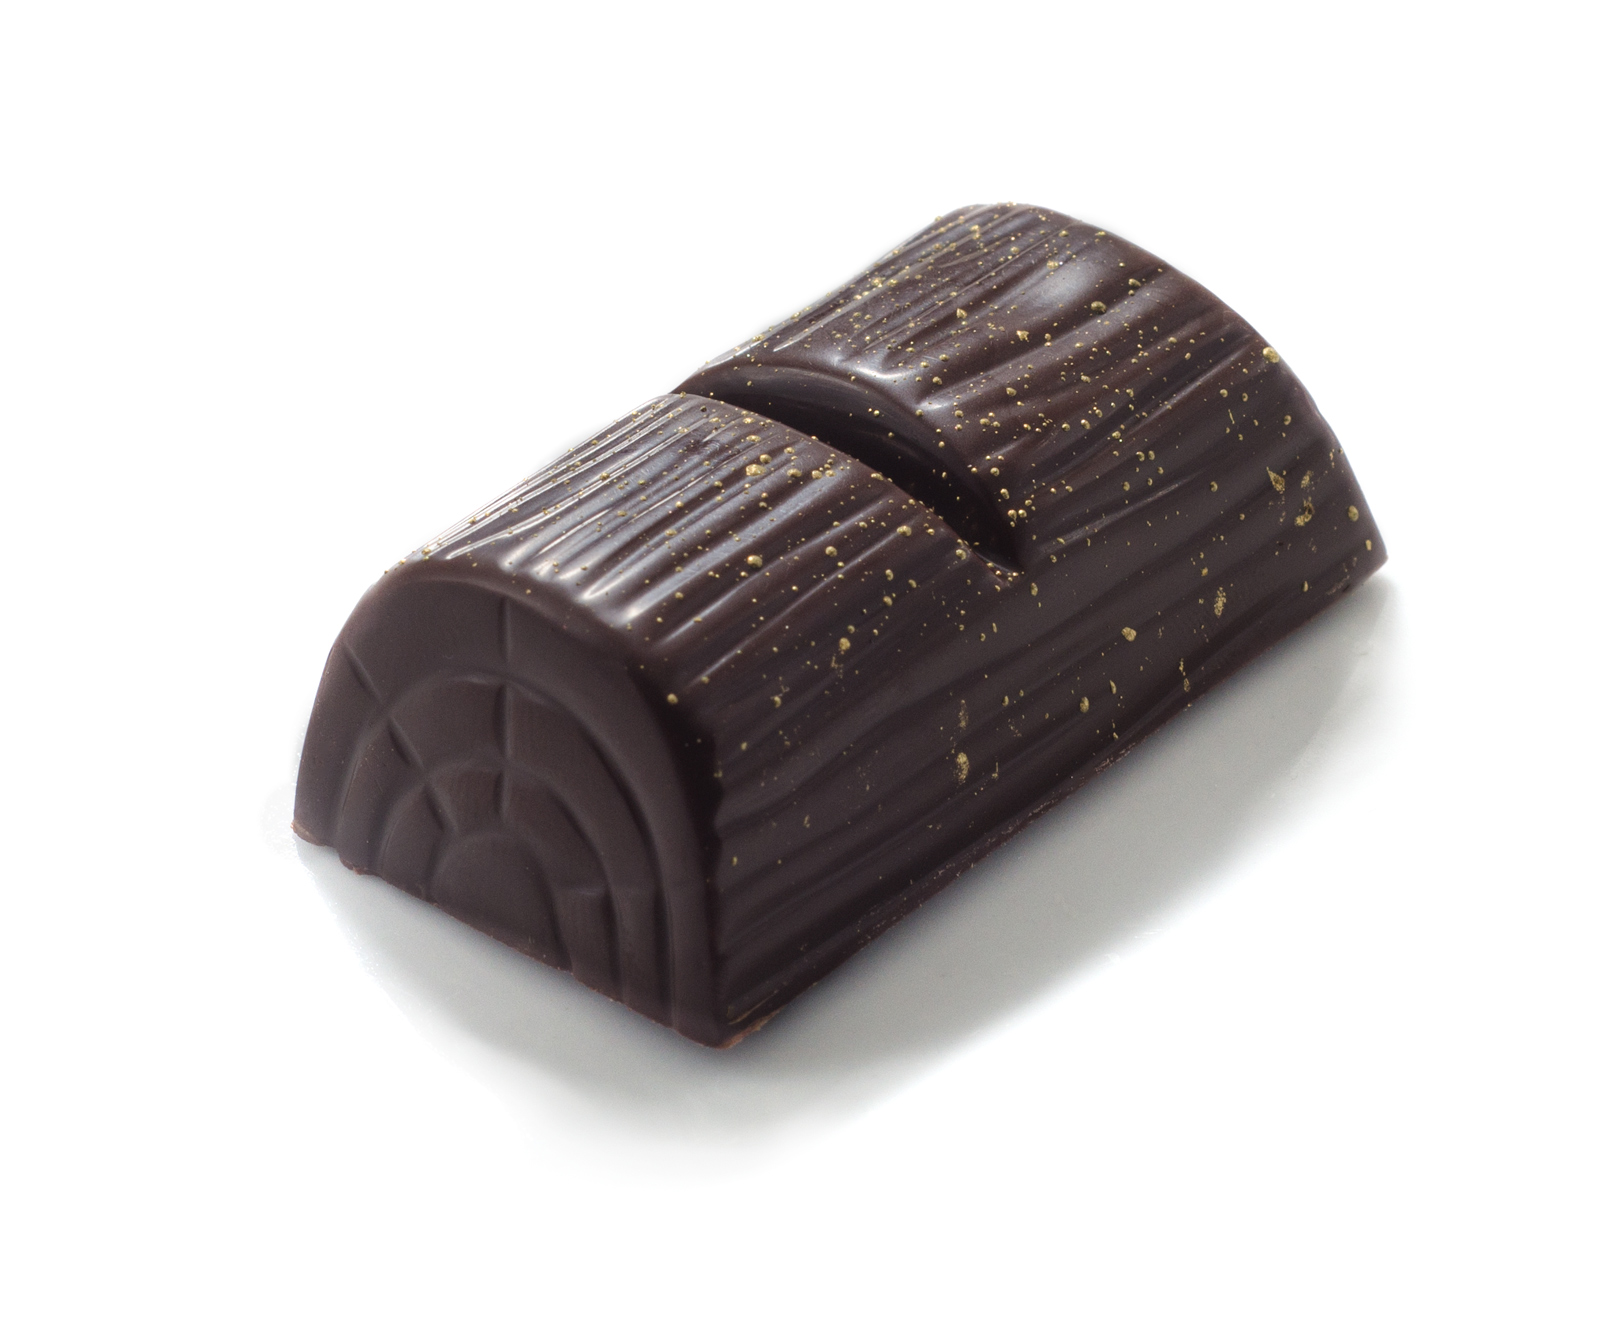 <b>COFFEE LOG</b><P ALIGN=Left>Dark chocolate casing with whole fresh coffee beans</P>